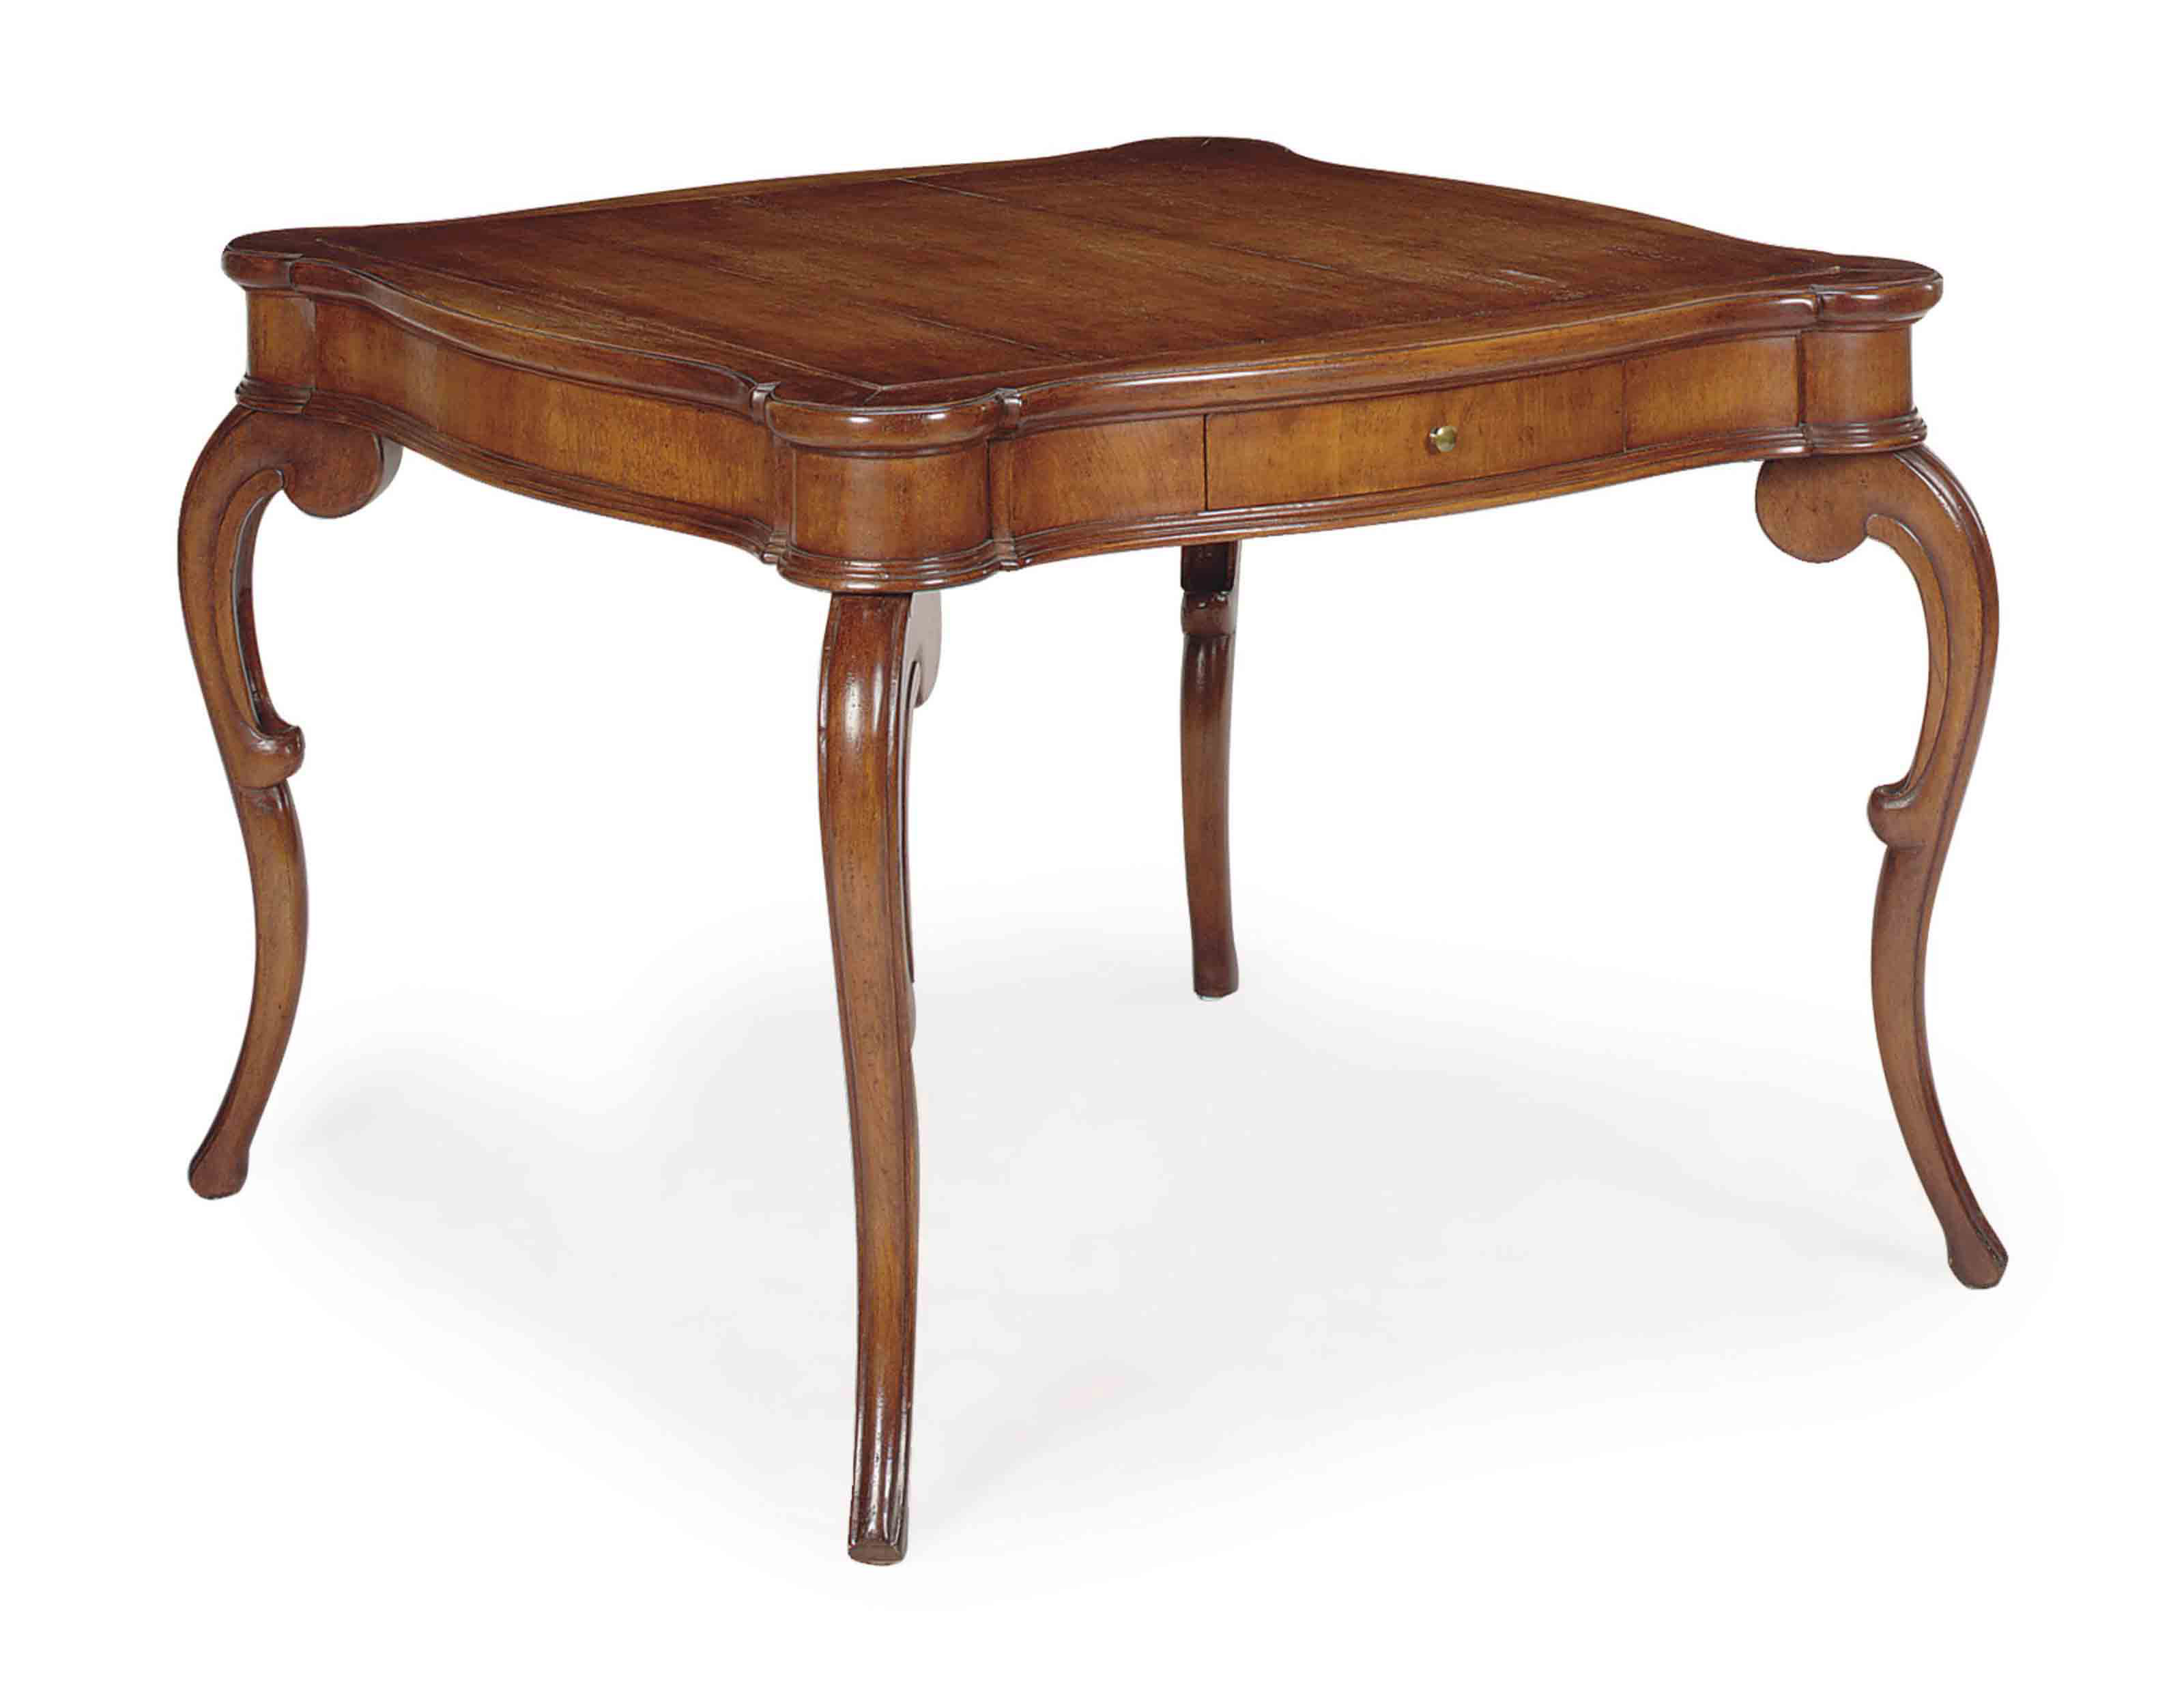 AN ITALIAN CARVED FRUITWOOD SQ